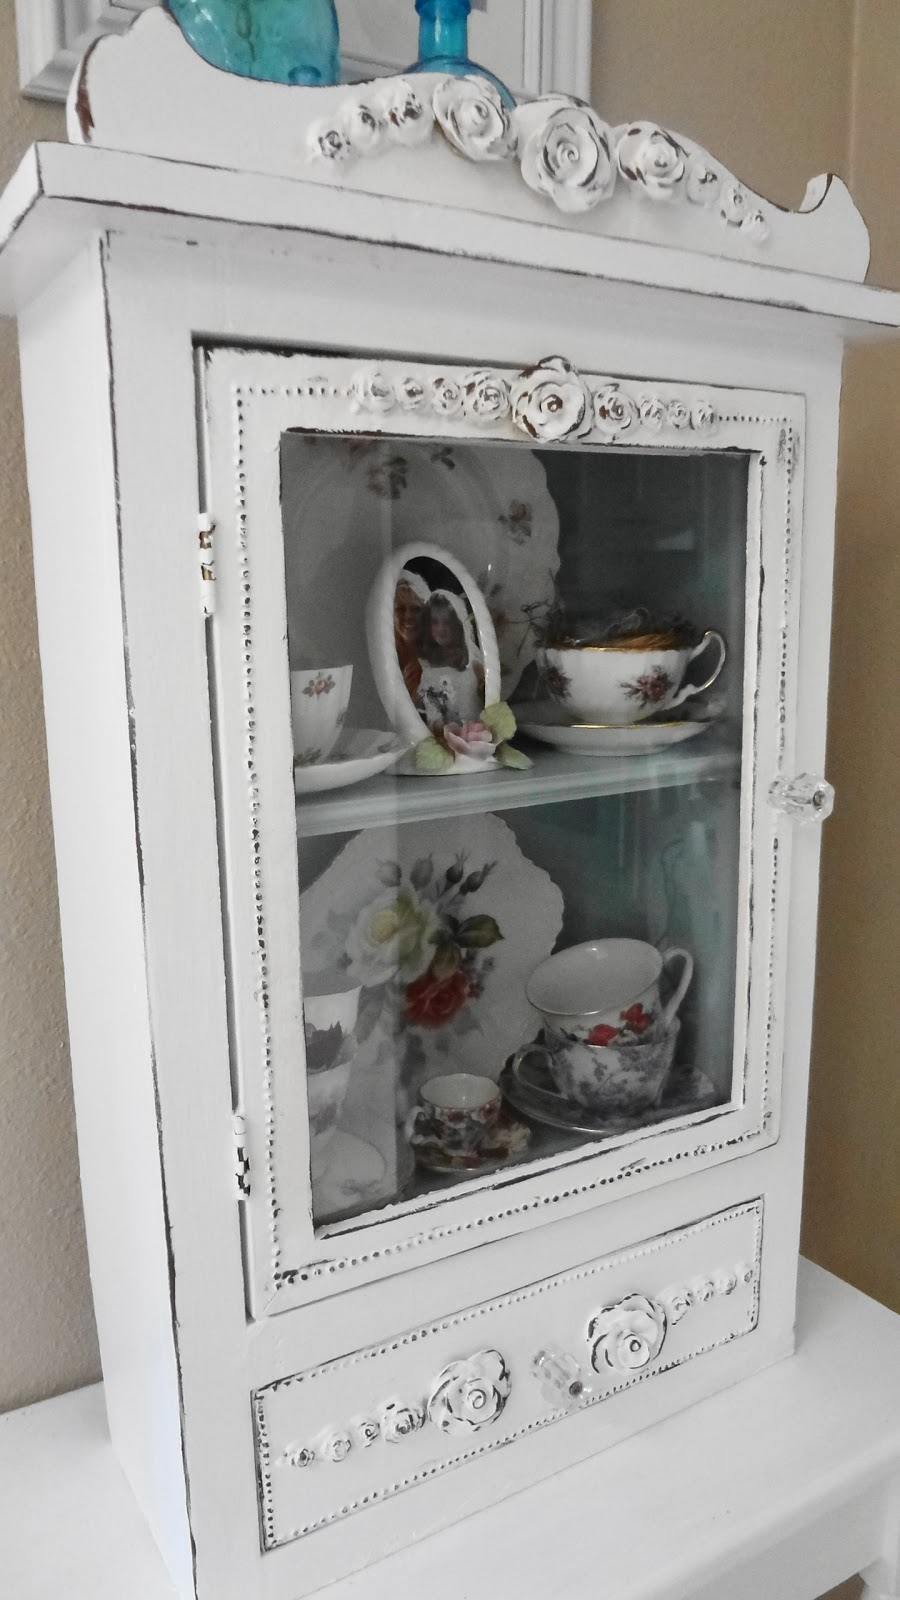 For the love of white: My Teacup Cupboard